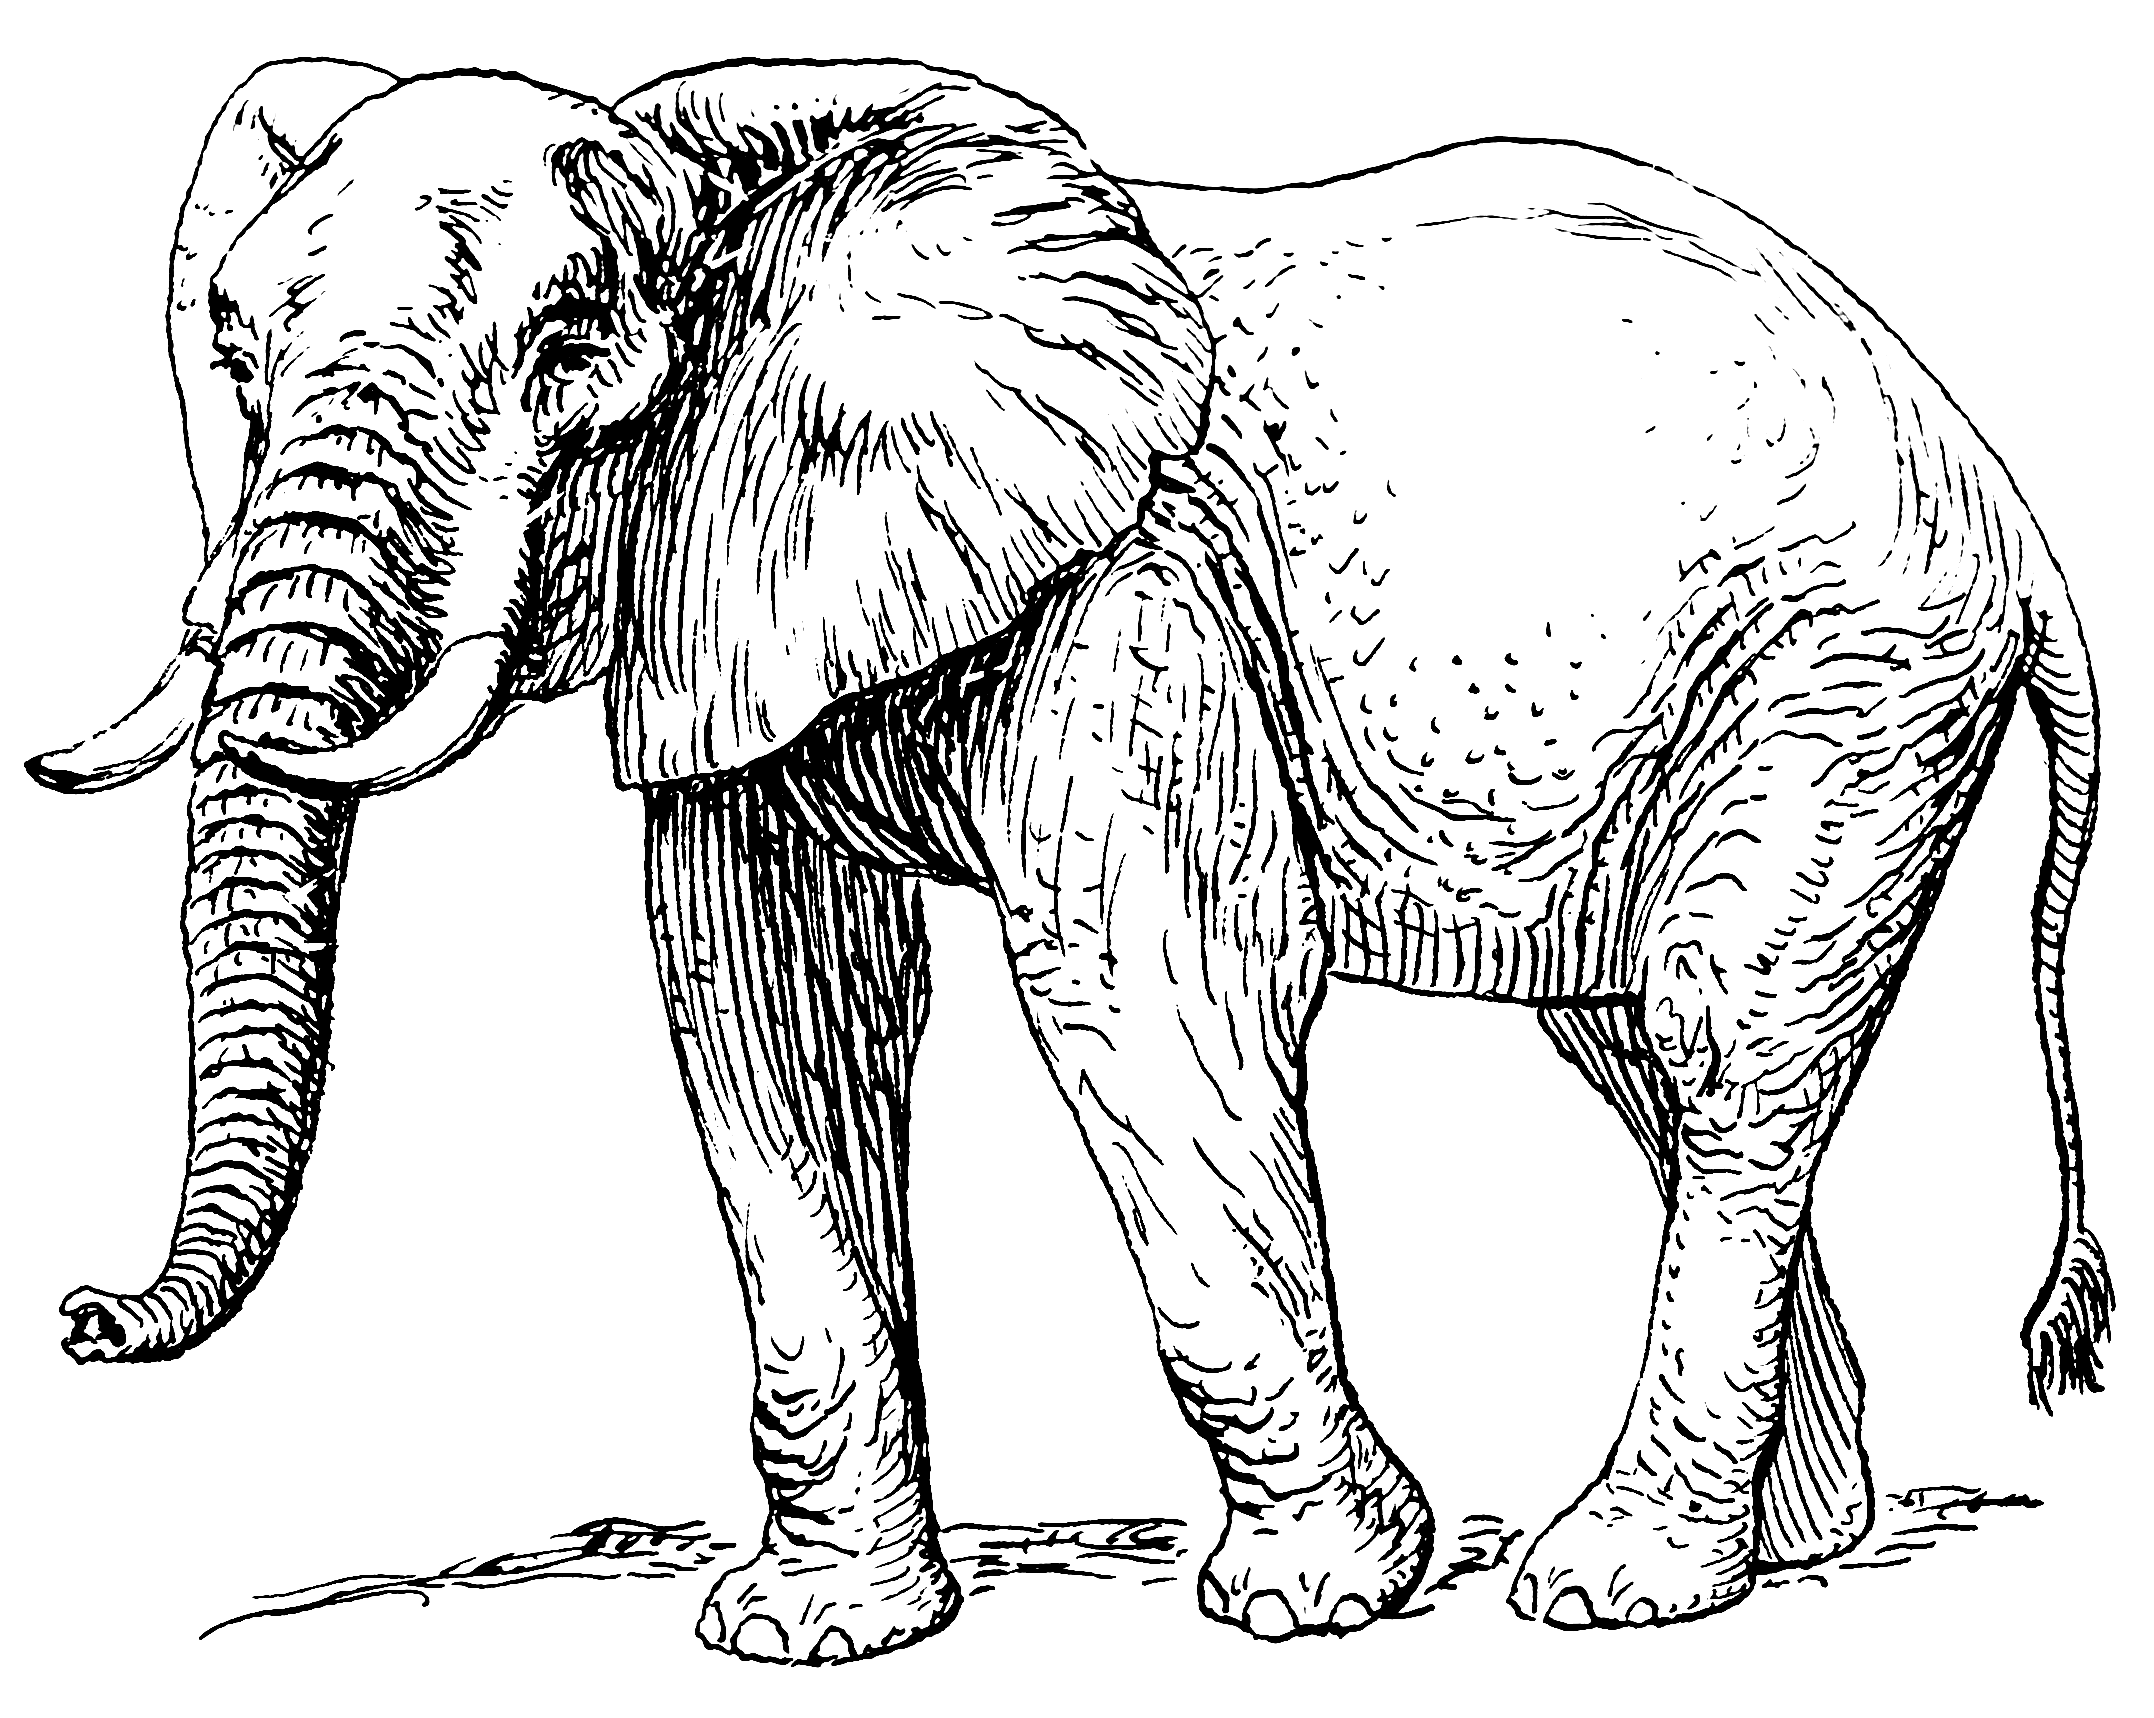 Elephant clip art african elephant. Food chain diet rivera